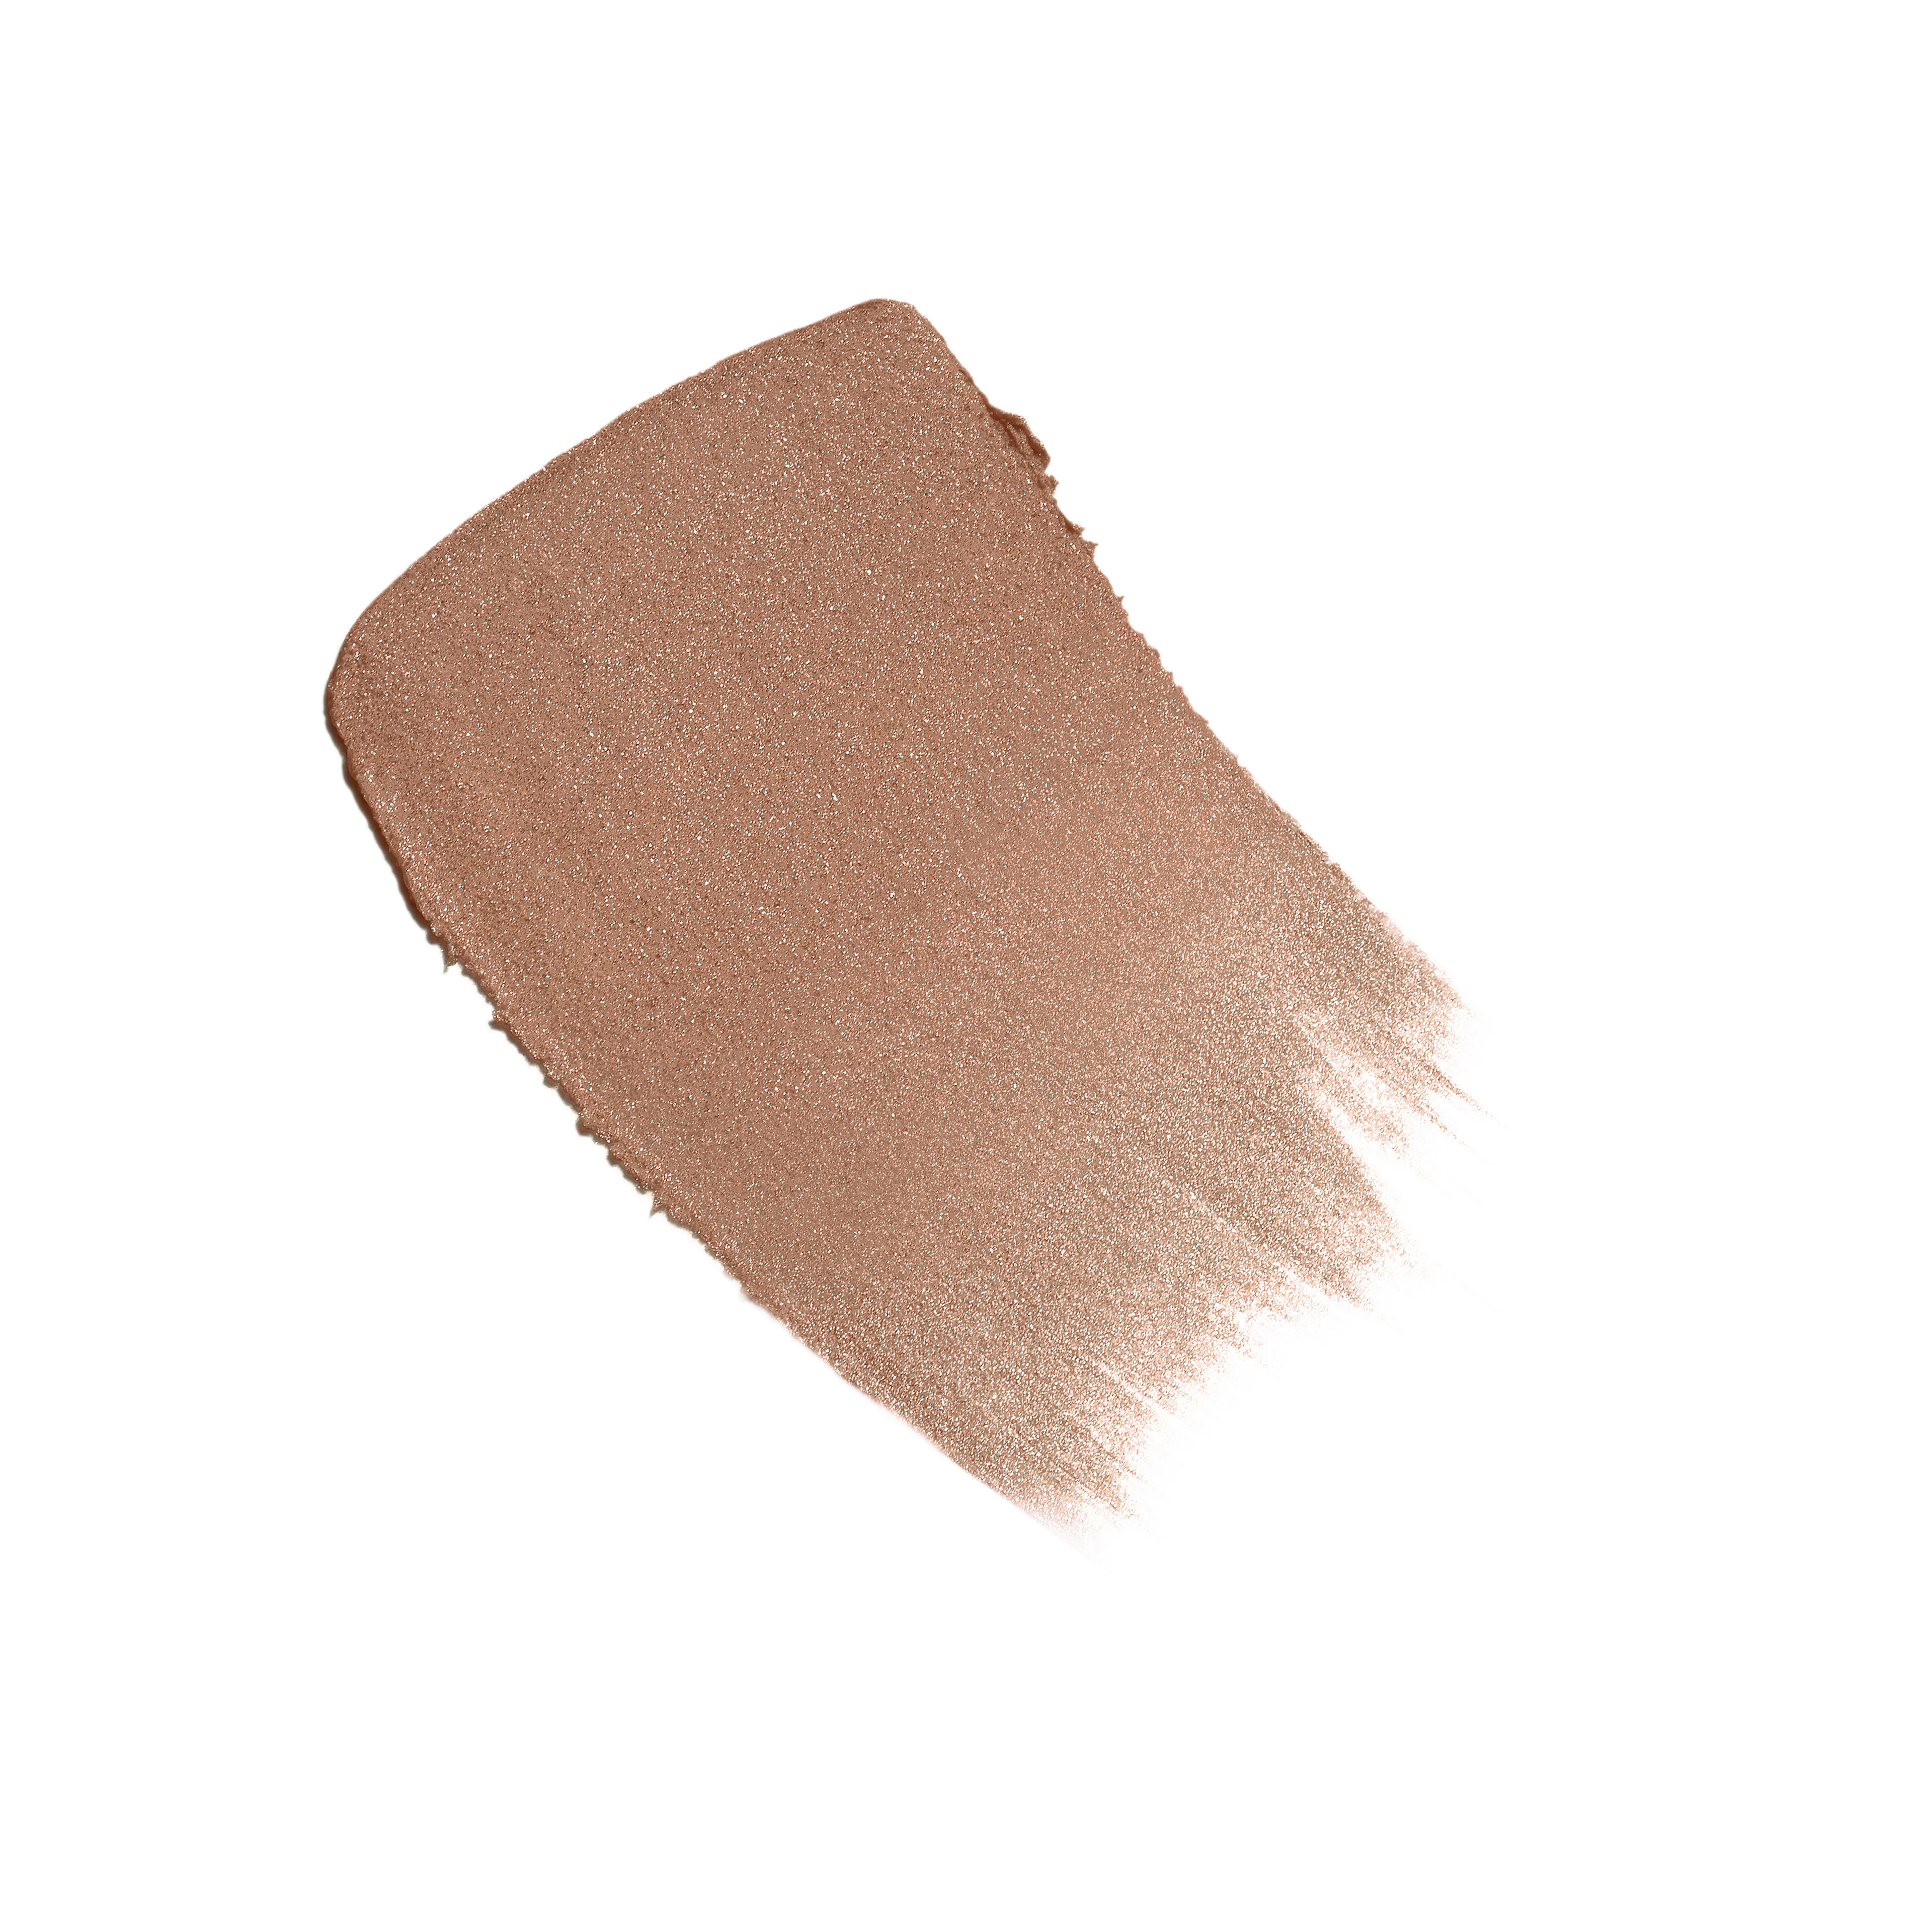 LES BEIGES - makeup - 0.28OZ. -                                                                 alternative view - see full sized version